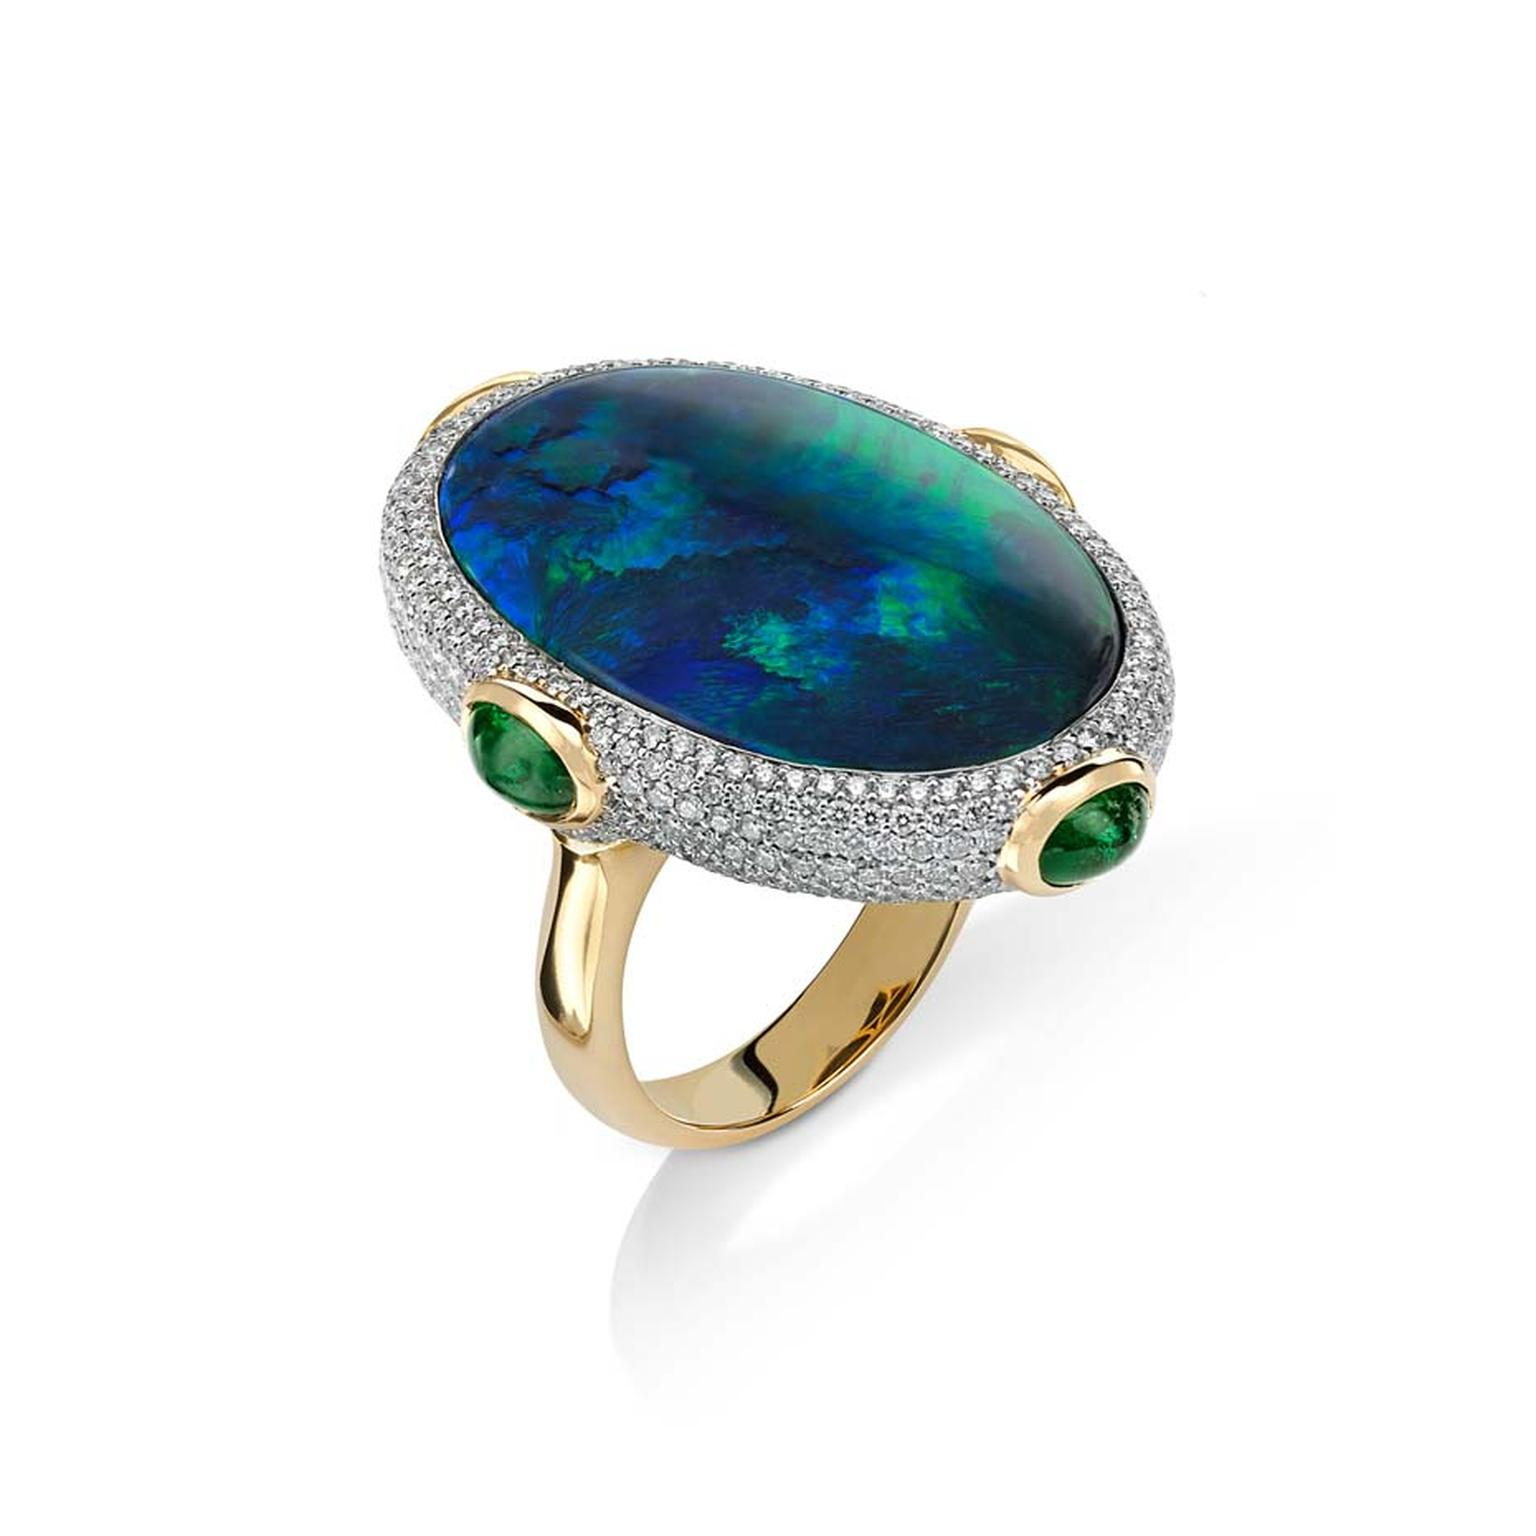 Pamela Huizenga Calypso Australian black opal ring in gold with emeralds and diamonds.